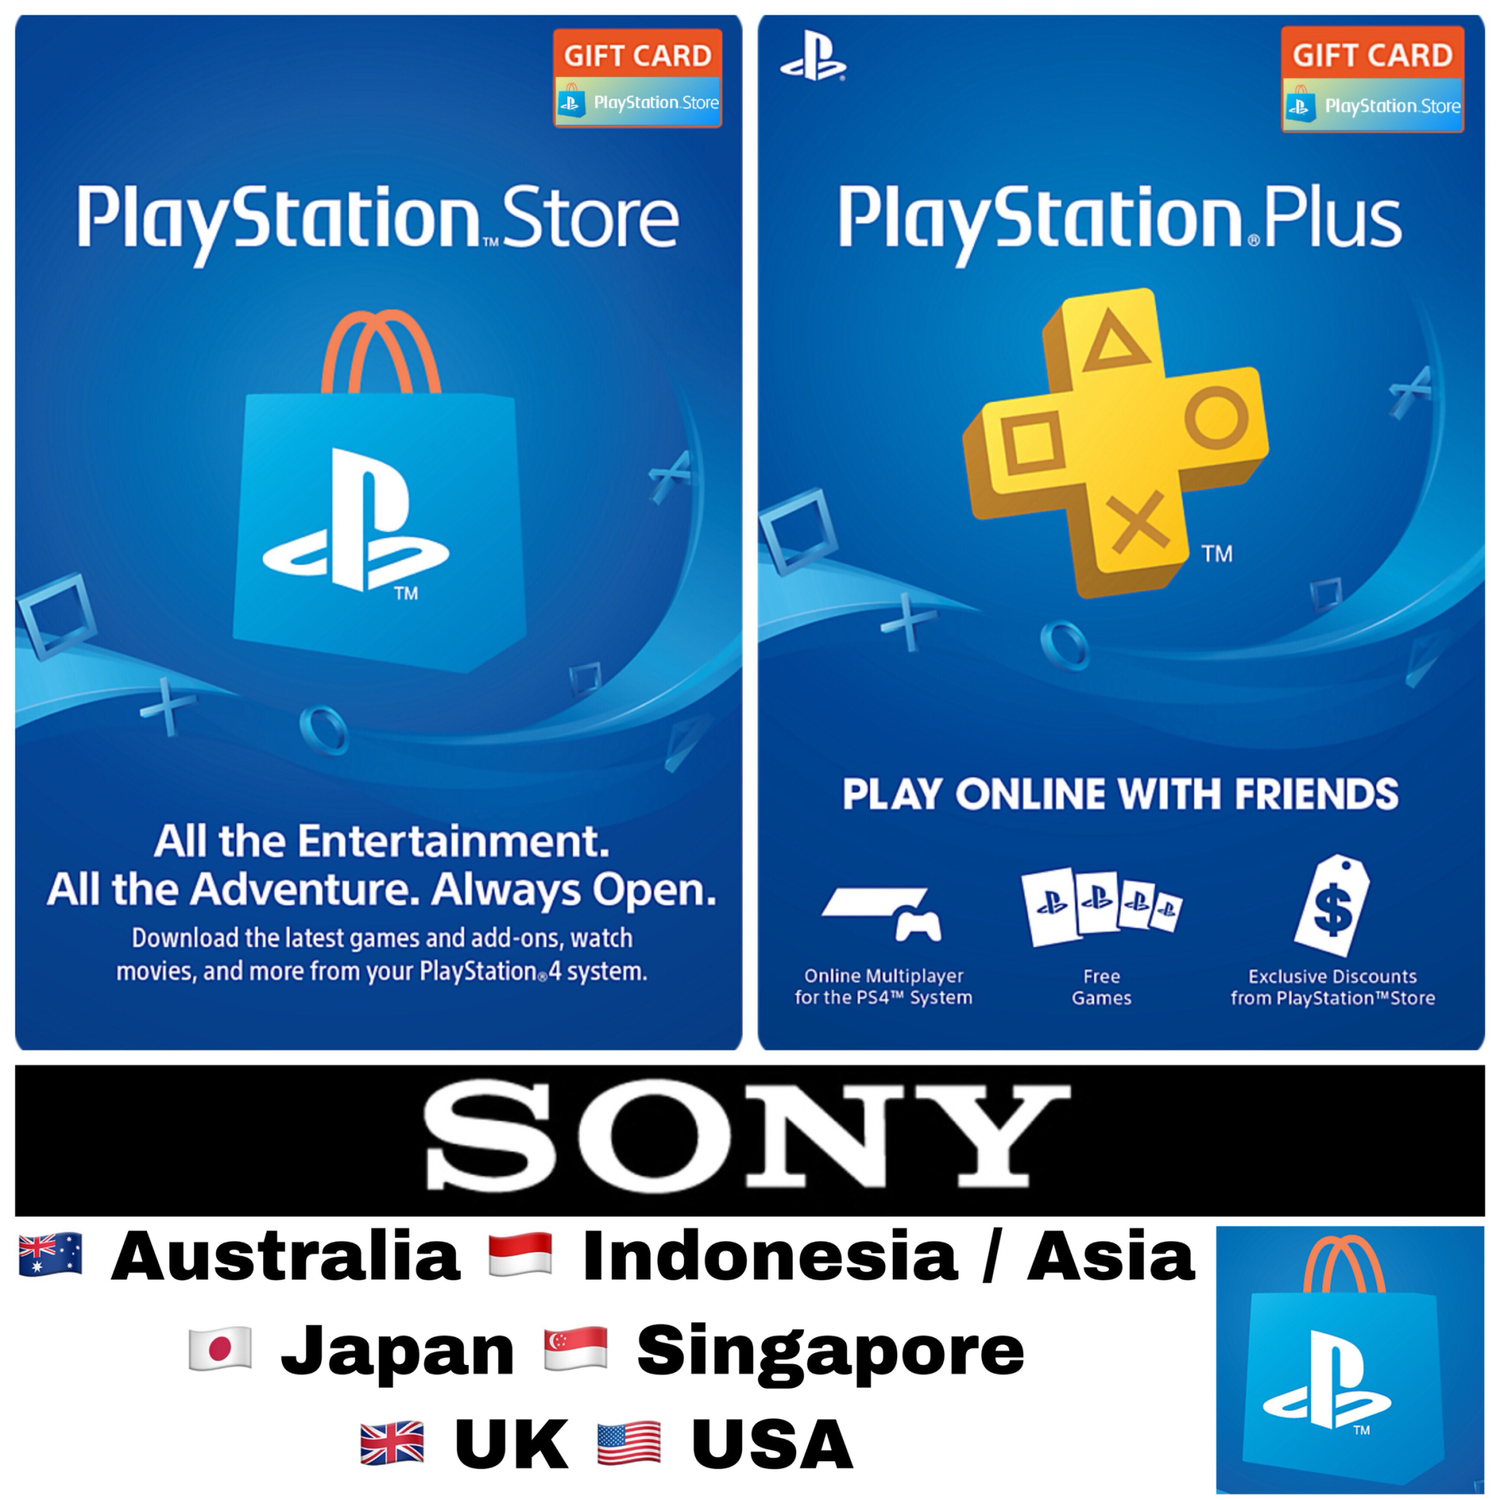 Playstation Store Gift Card / PSN Card, Playstation Plus / PSN Plus